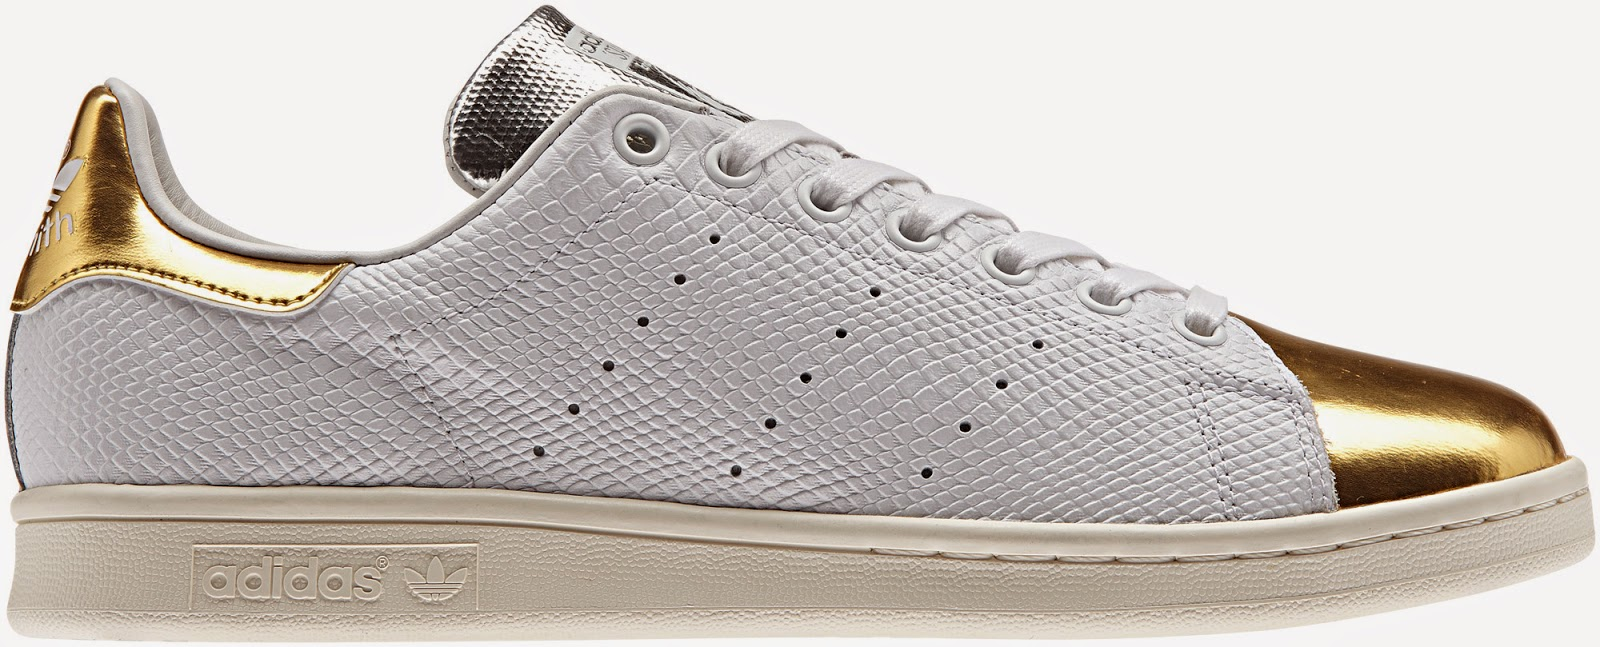 new product 8f356 ceea5 WOMEN S HONEYCOMB GLOSS PACK. Adidas Originals presents a subtle twist on  the original Stan Smith ...